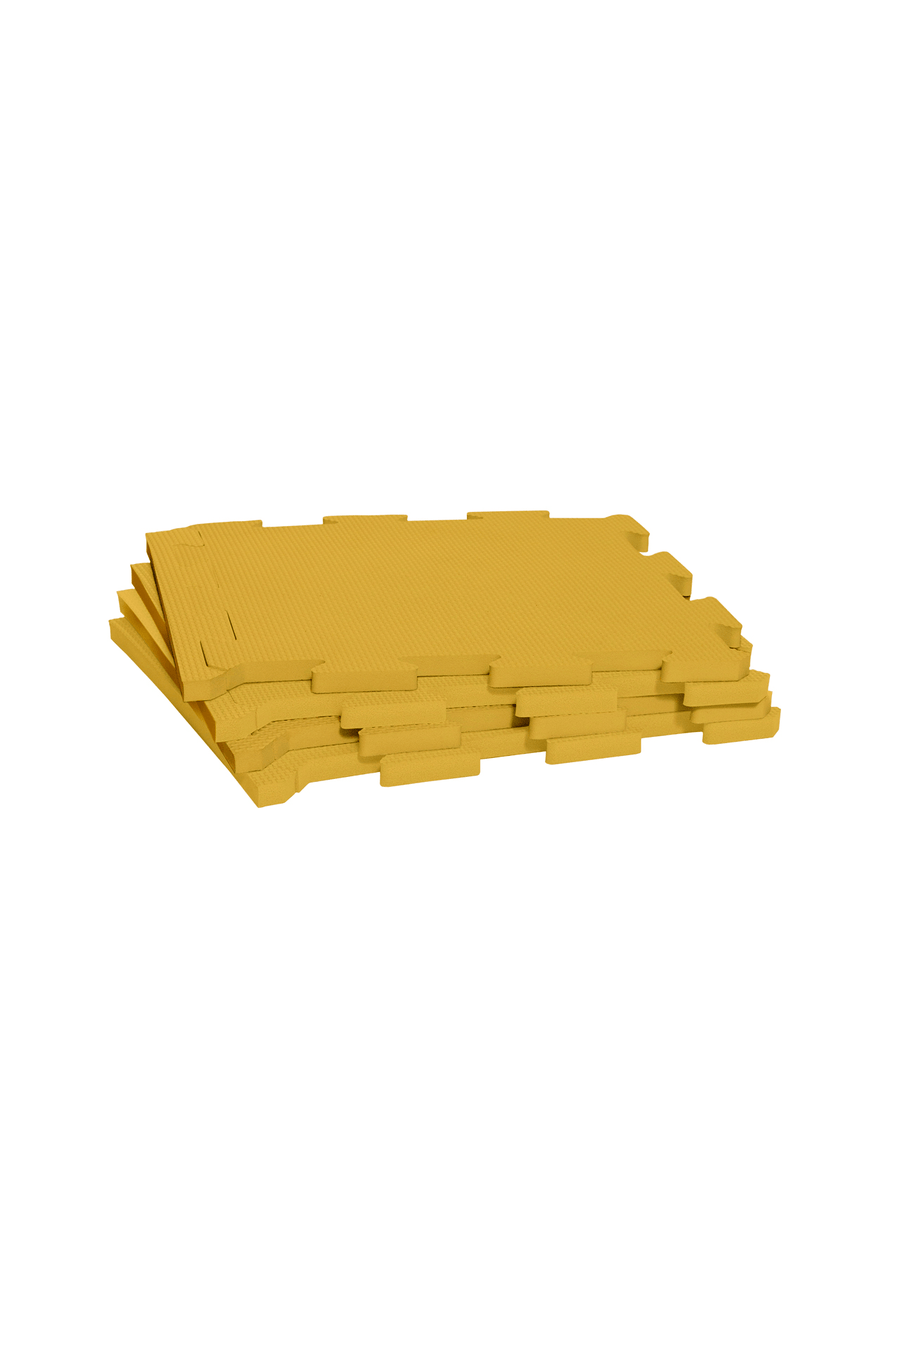 The Modern Nursery Puzzle Playmat Extension - Mustard (4pcs)